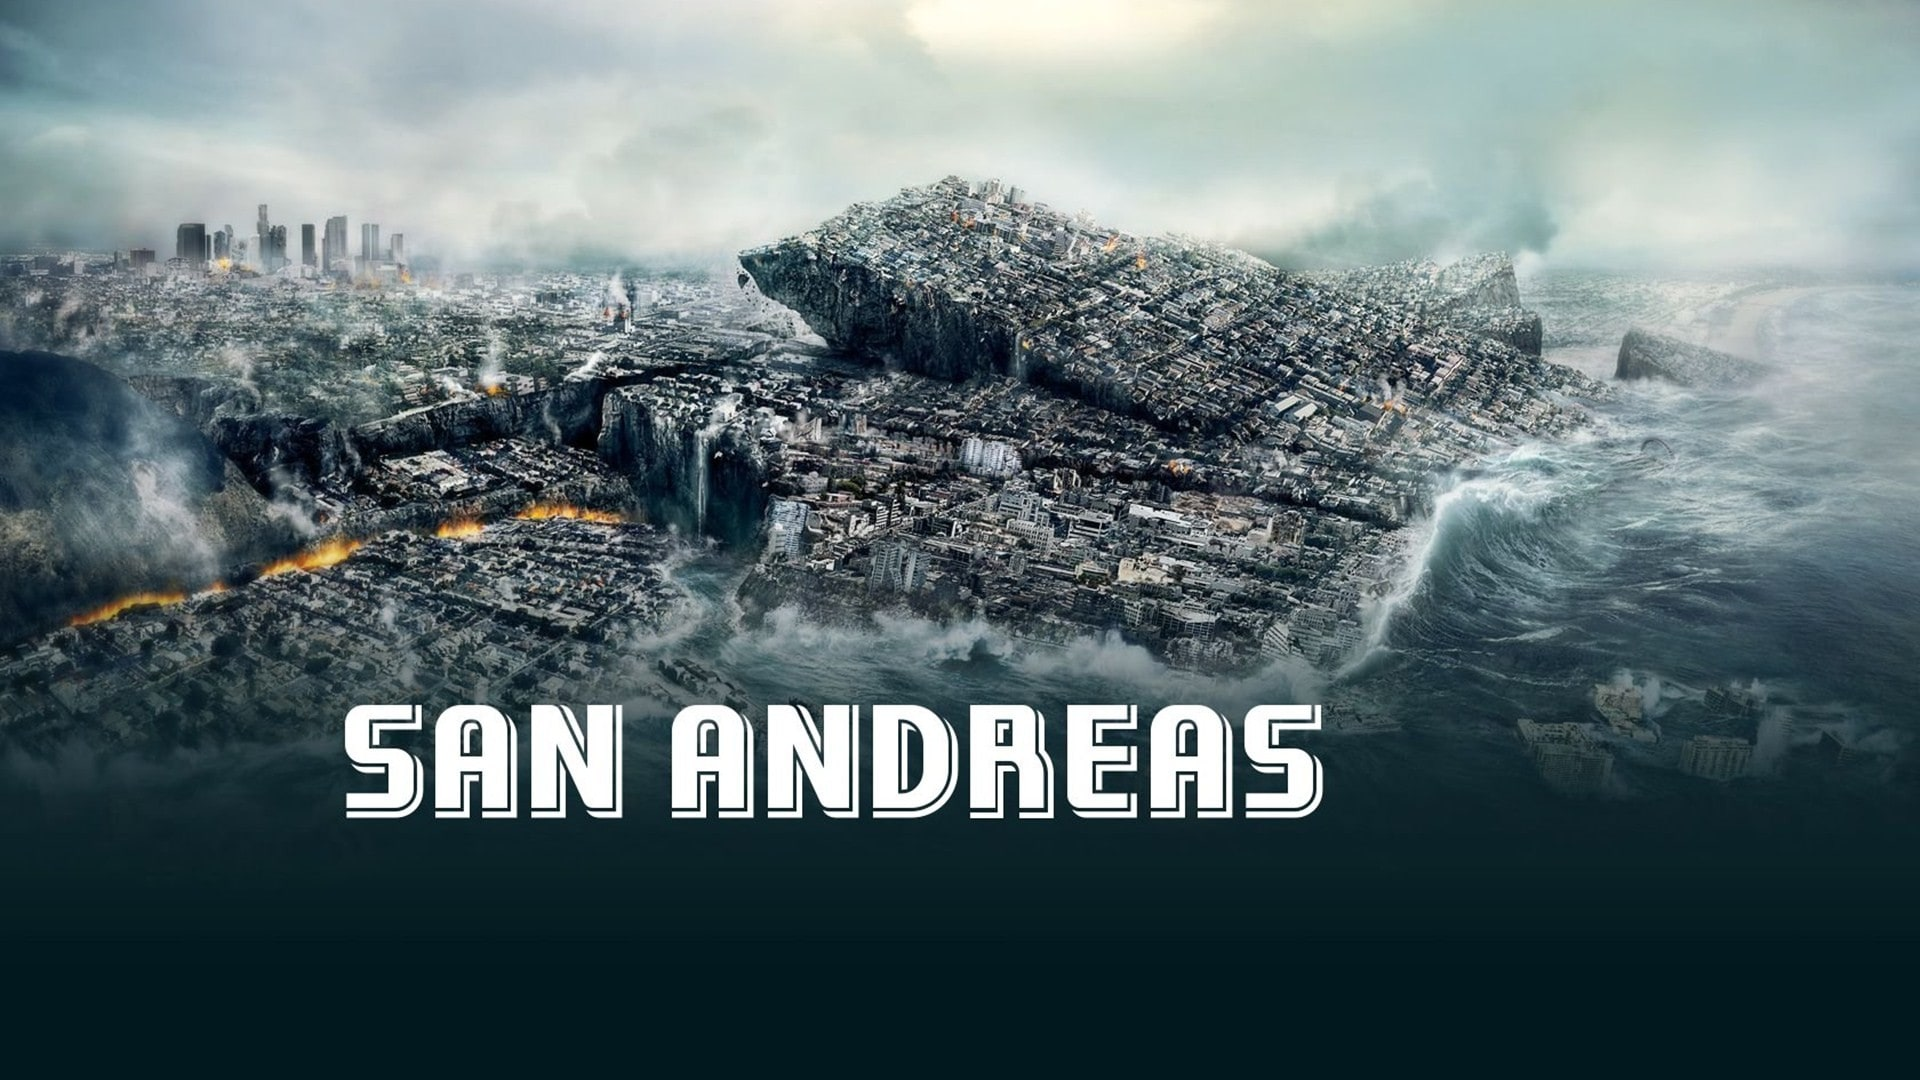 San Andreas Pictures